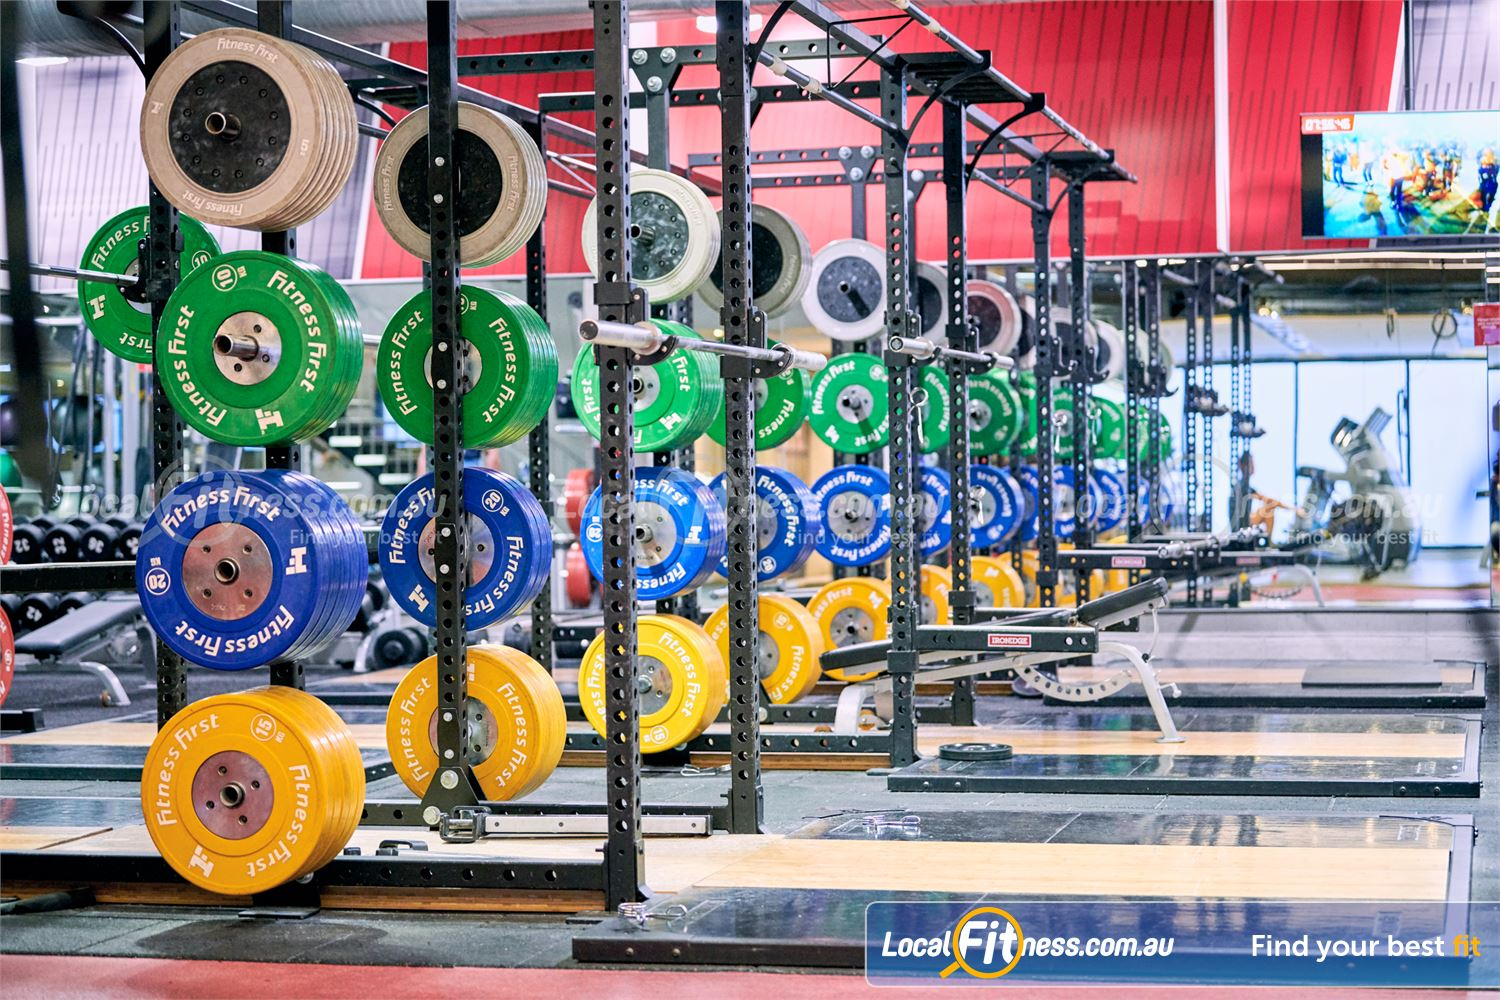 Fitness First Victoria Gardens Near Toorak Multiple high-performance strength cages with Olympic lifting platforms.